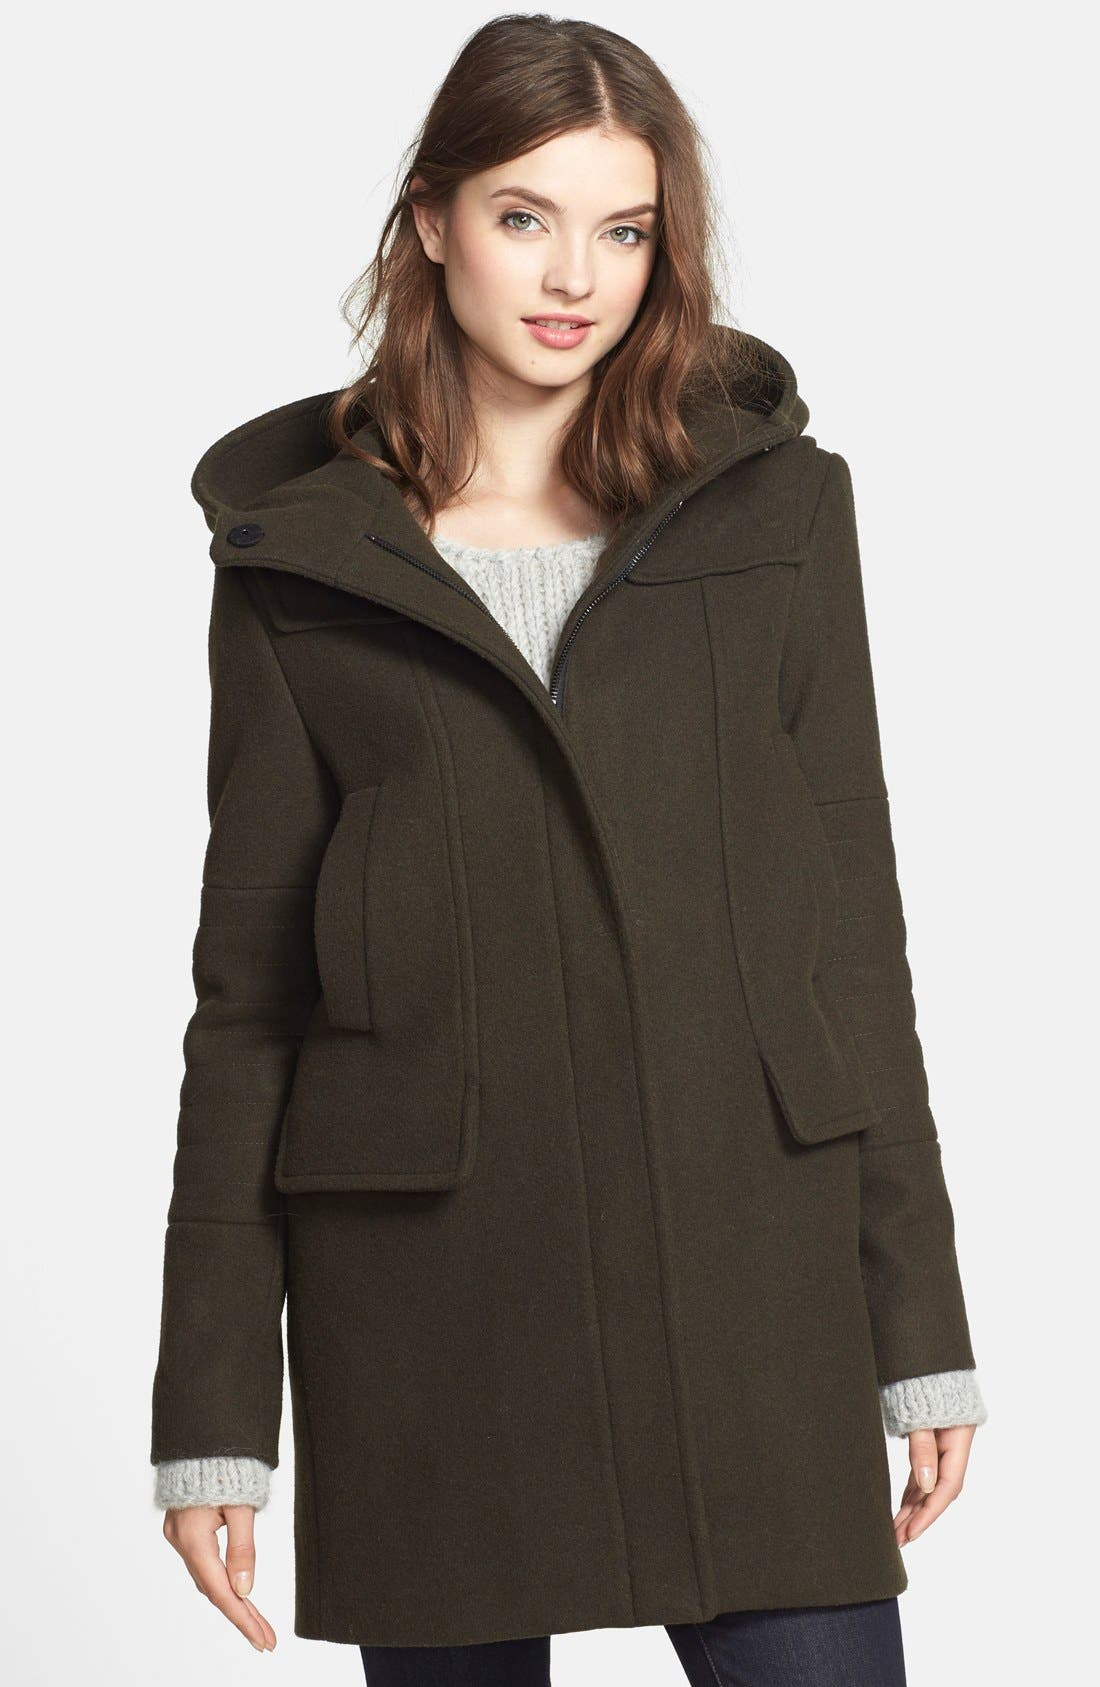 Alternate Image 1 Selected - Vince Camuto Wool Blend Duffle Coat